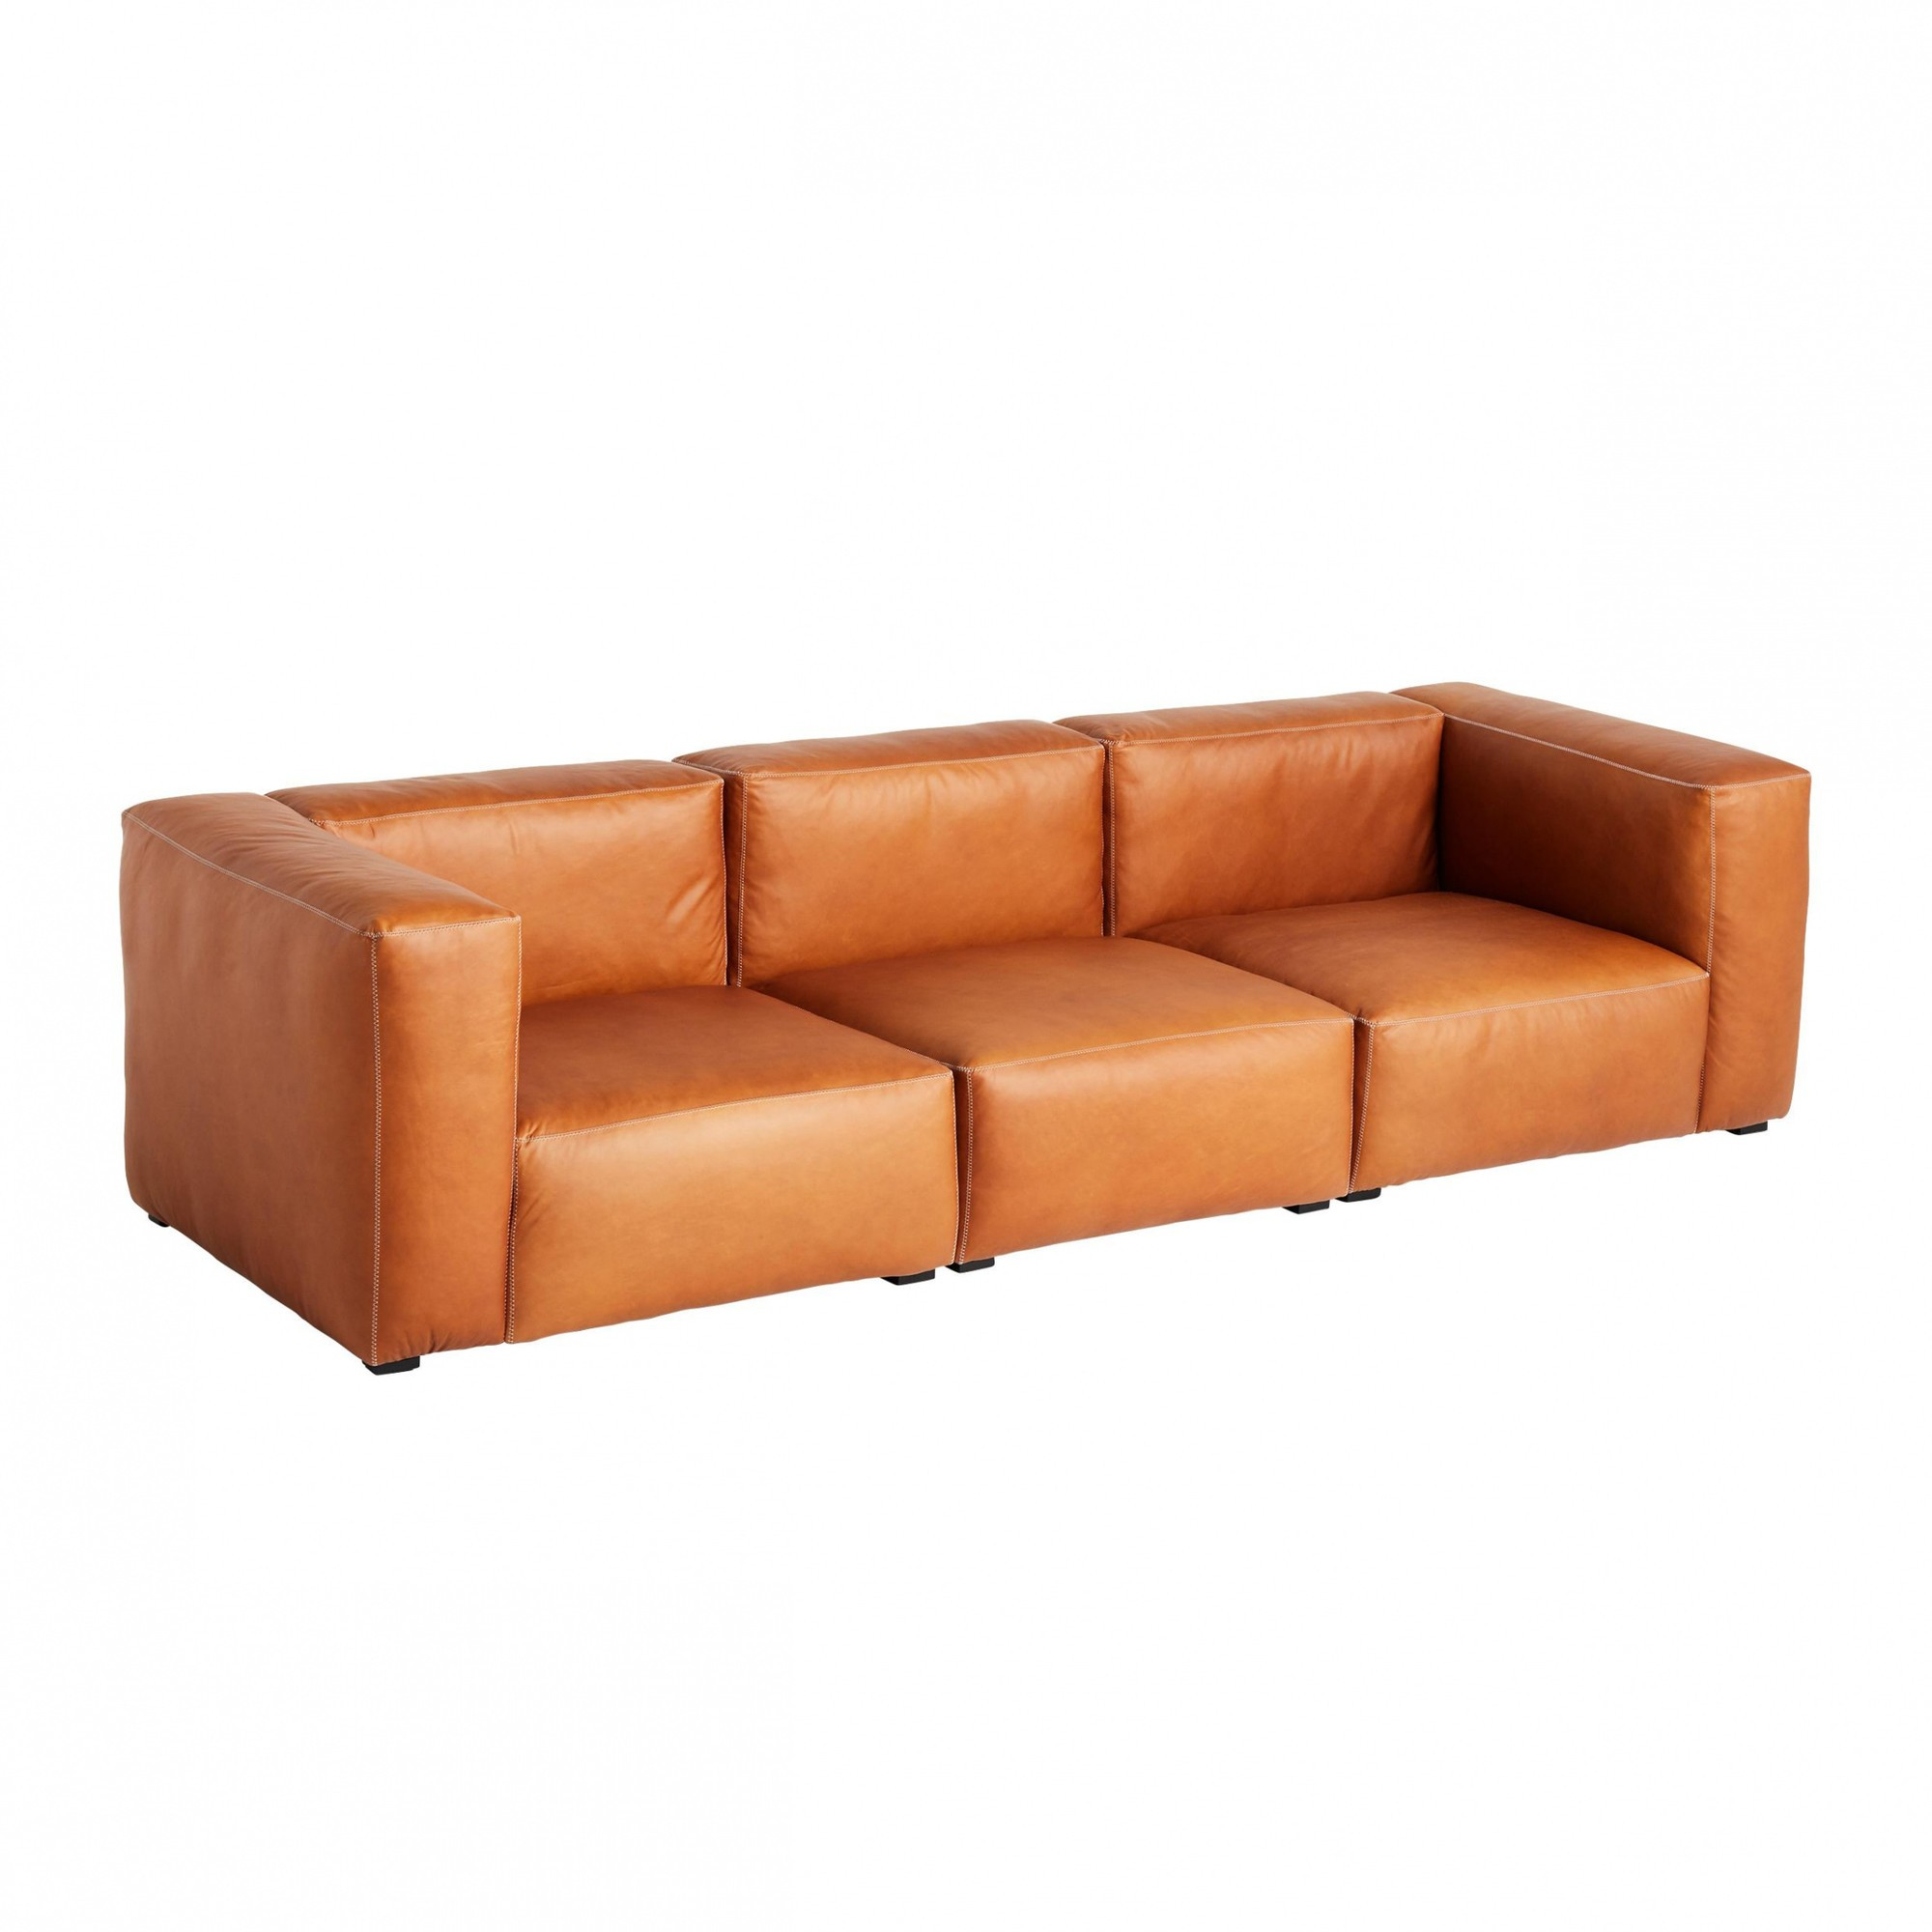 Mags Soft 12 Seater Sofa Leather